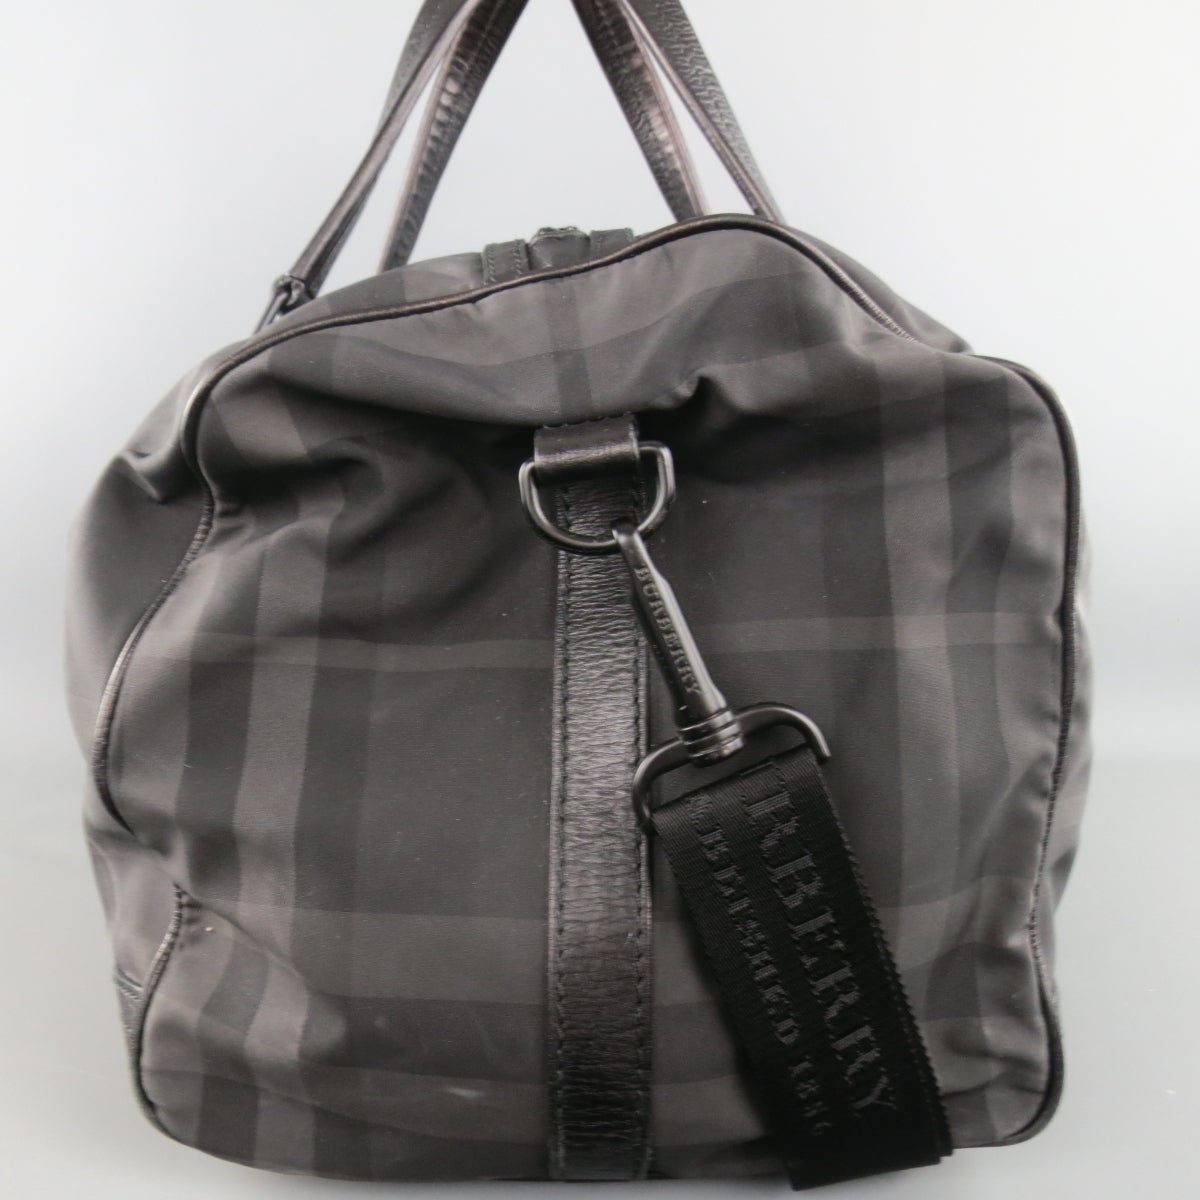 b68943d78286 BURBERRY Black and Grey Plaid Nylon and Leather Large Duffle Bag at 1stdibs